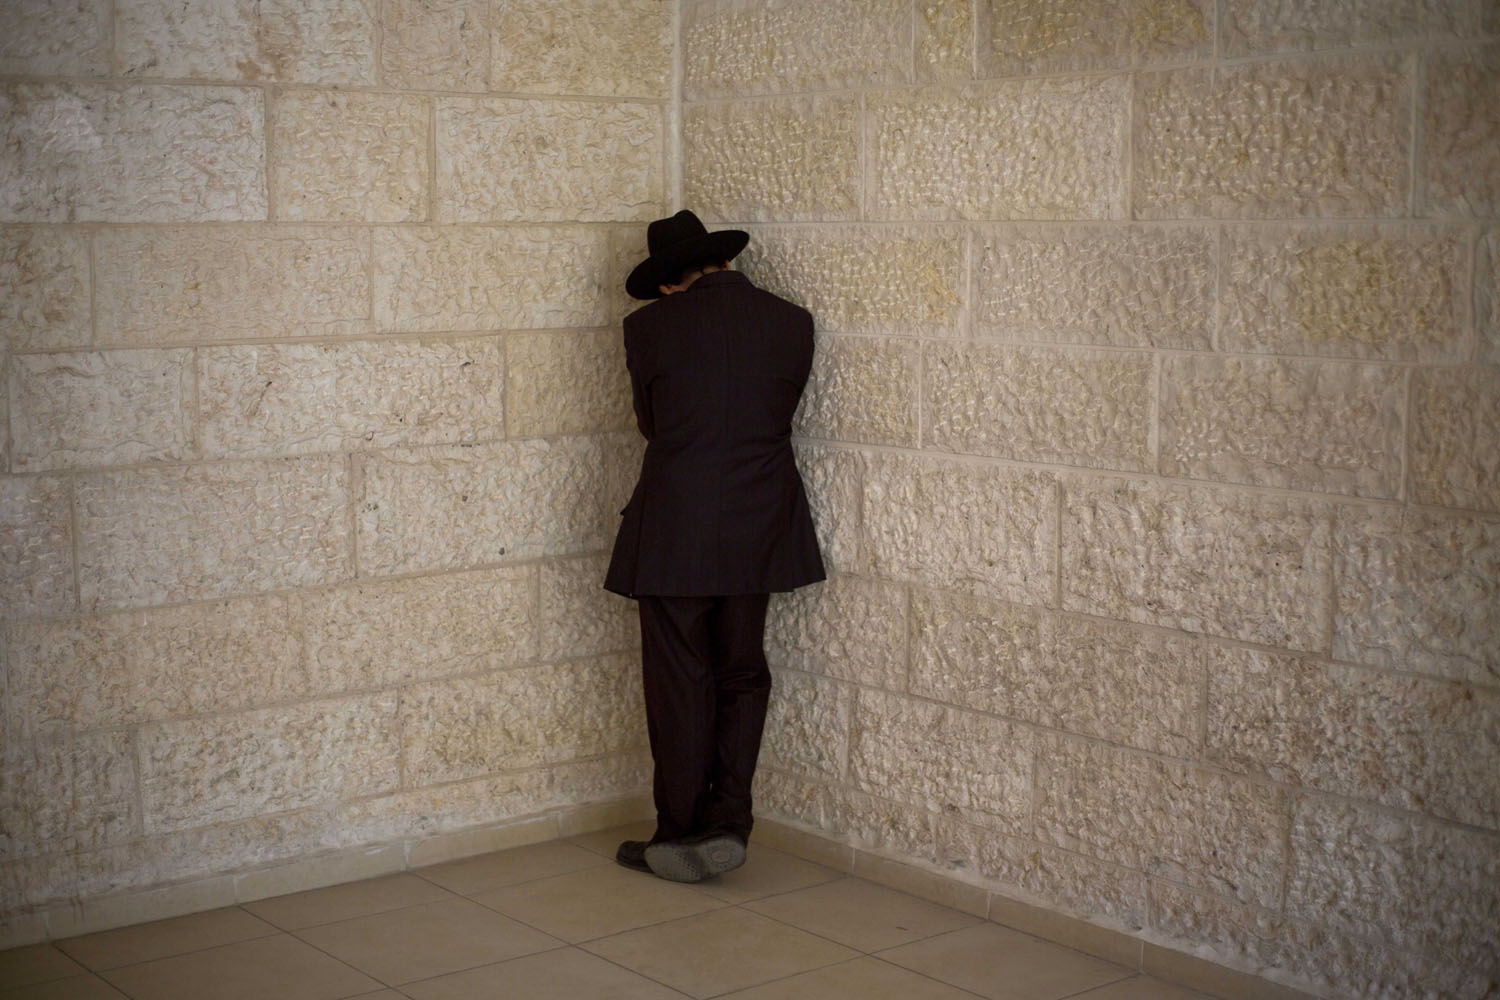 Oct. 7, 2013. An Orthodox Jew weeps after receiving the news about the death of Rabbi Ovadia Yosef outside of the rabbi's home in Jerusalem.